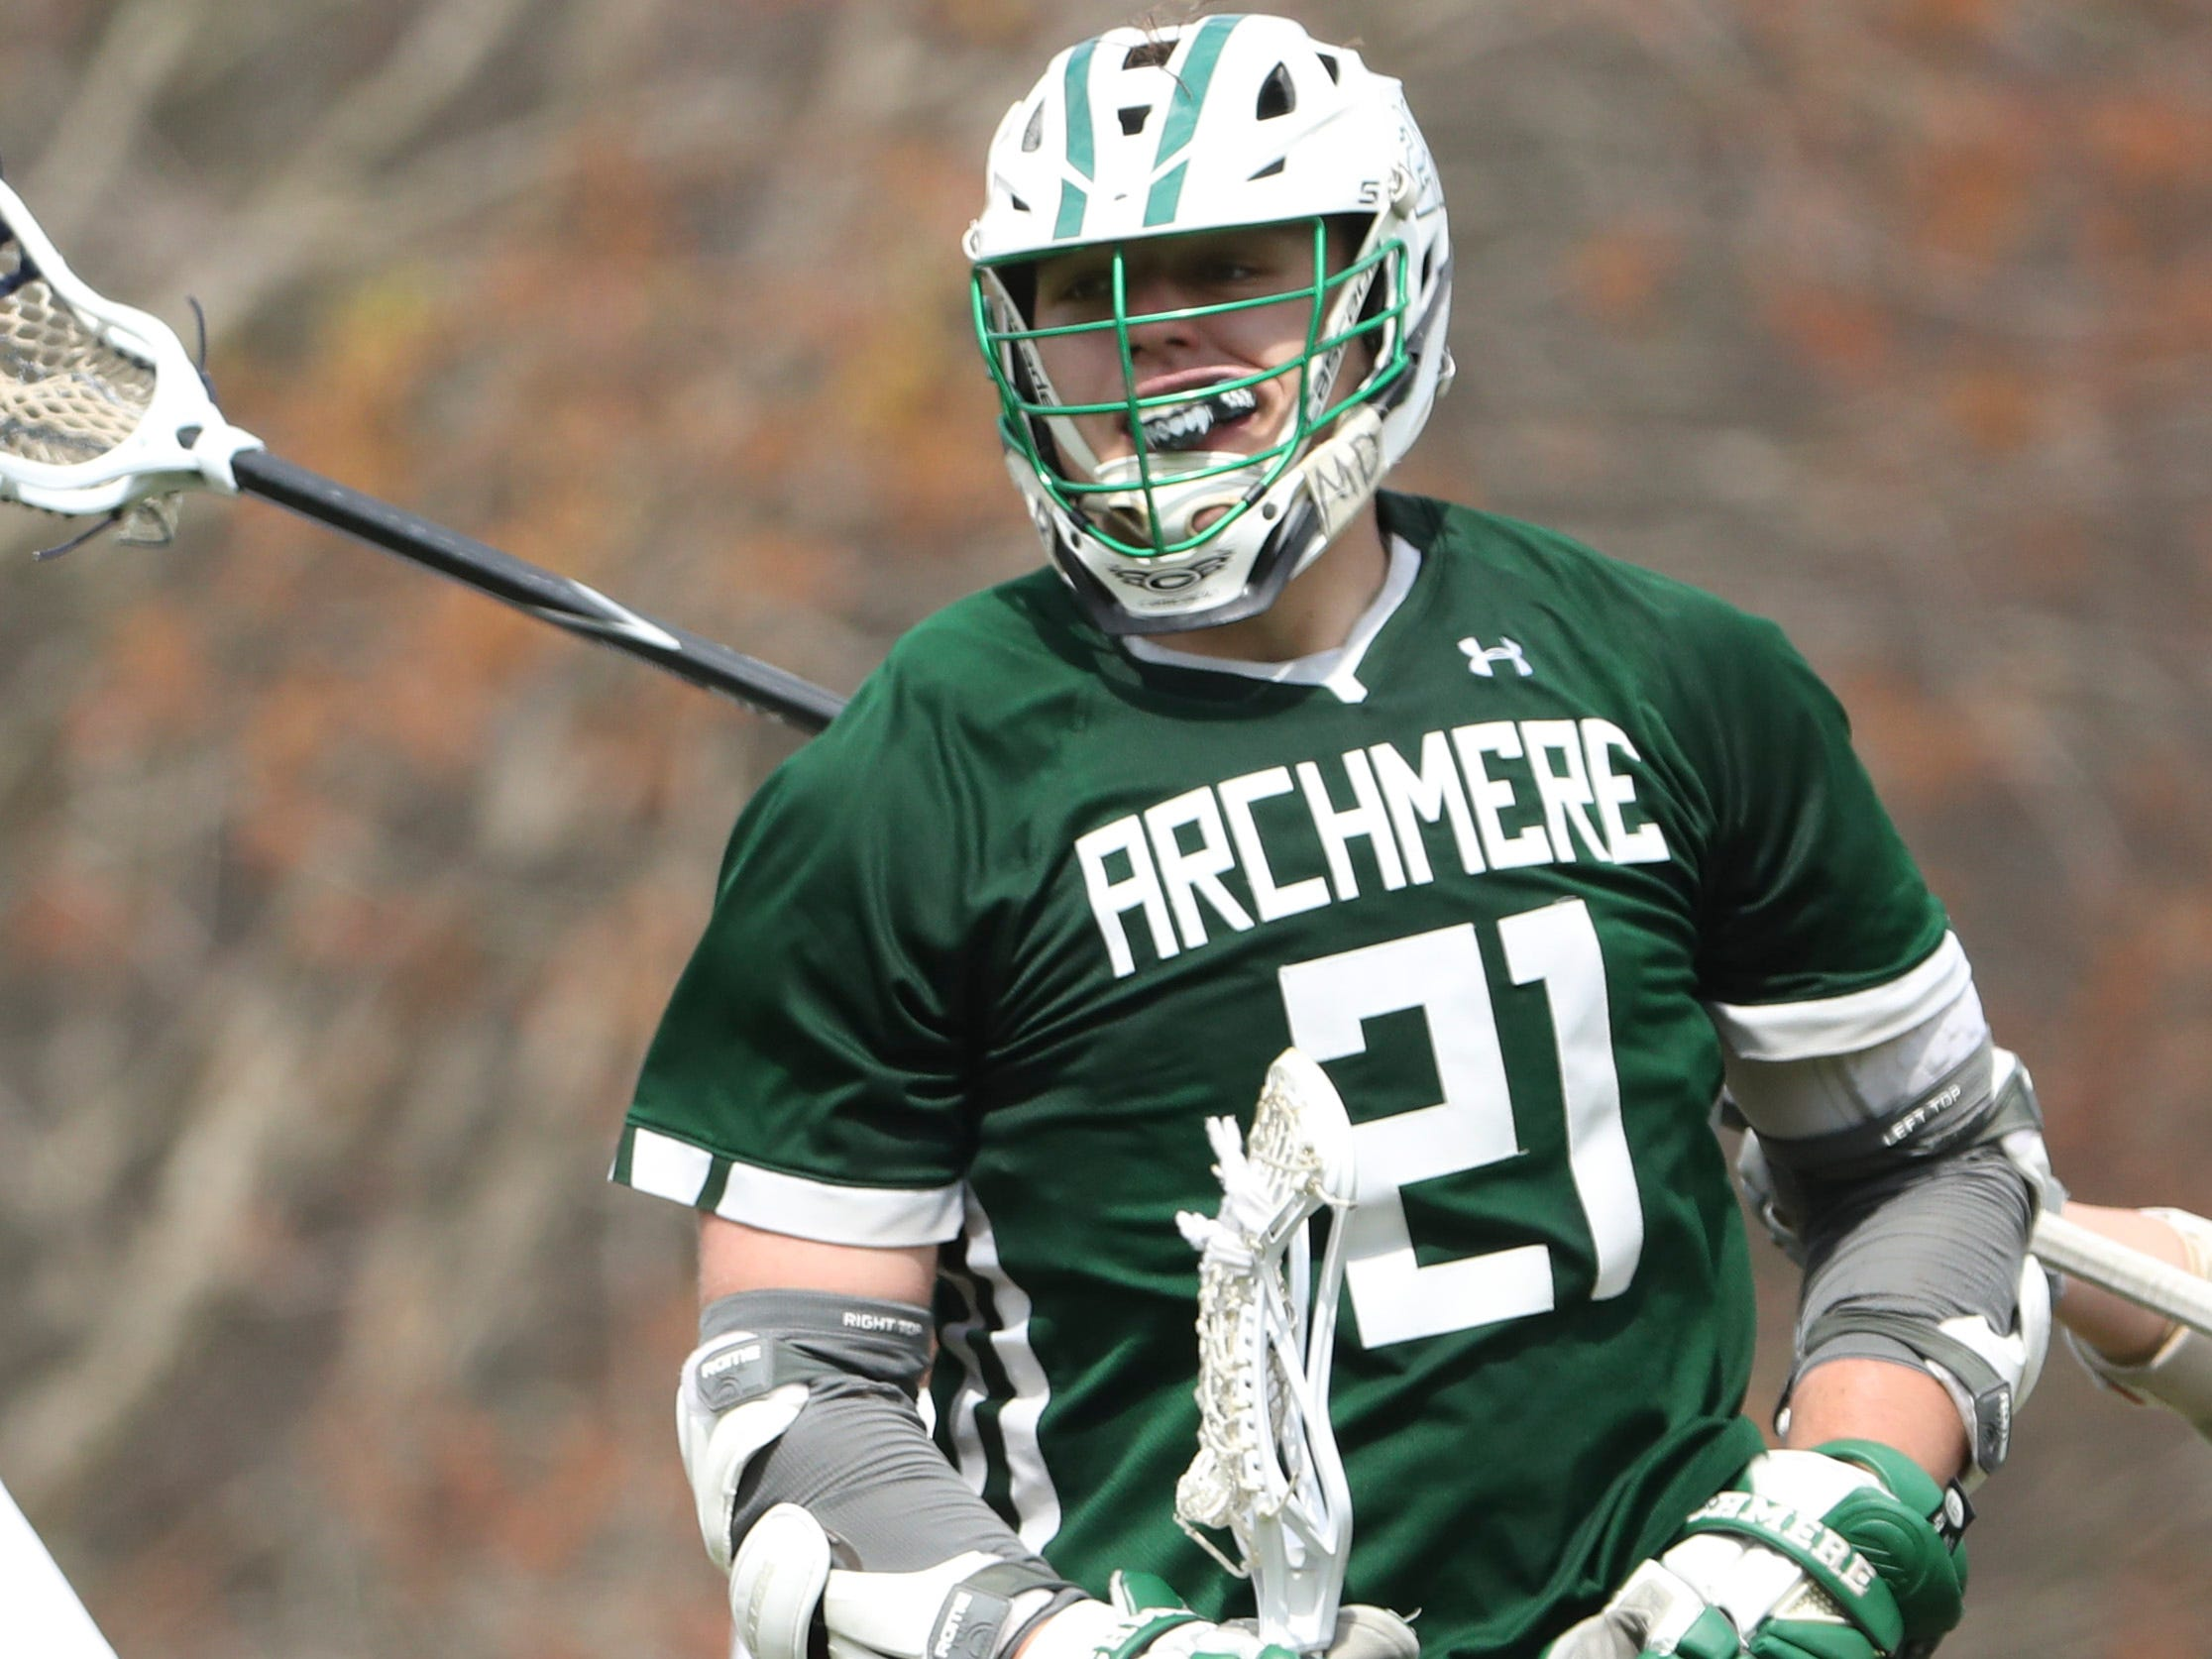 Archmere's Mitch Moyer celebrates a goal in the second half of Sanford's 12-10 win Saturday.